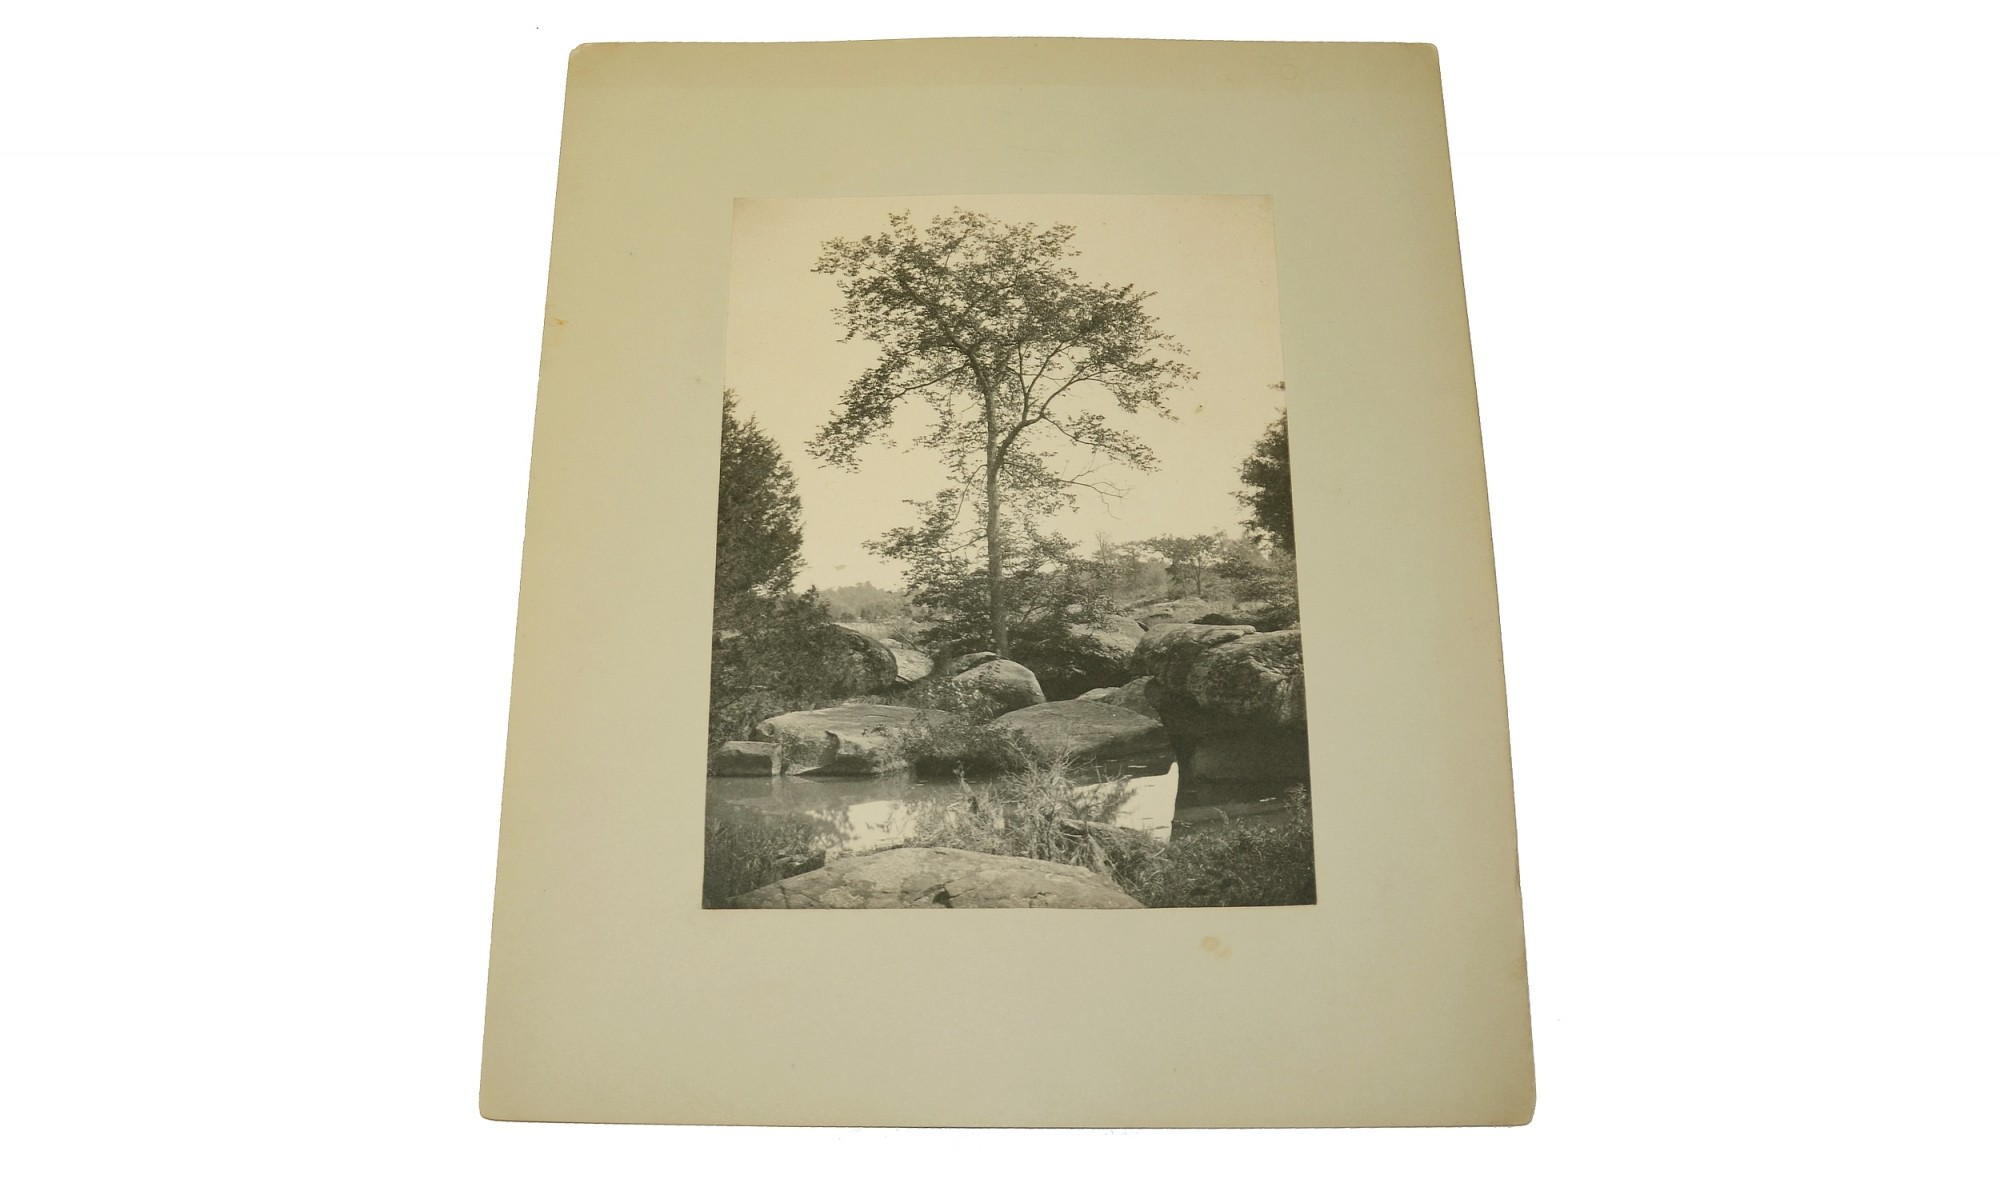 LARGE CABINET PHOTO OF THE SLAUGHTER PEN AT GETTYSBURG